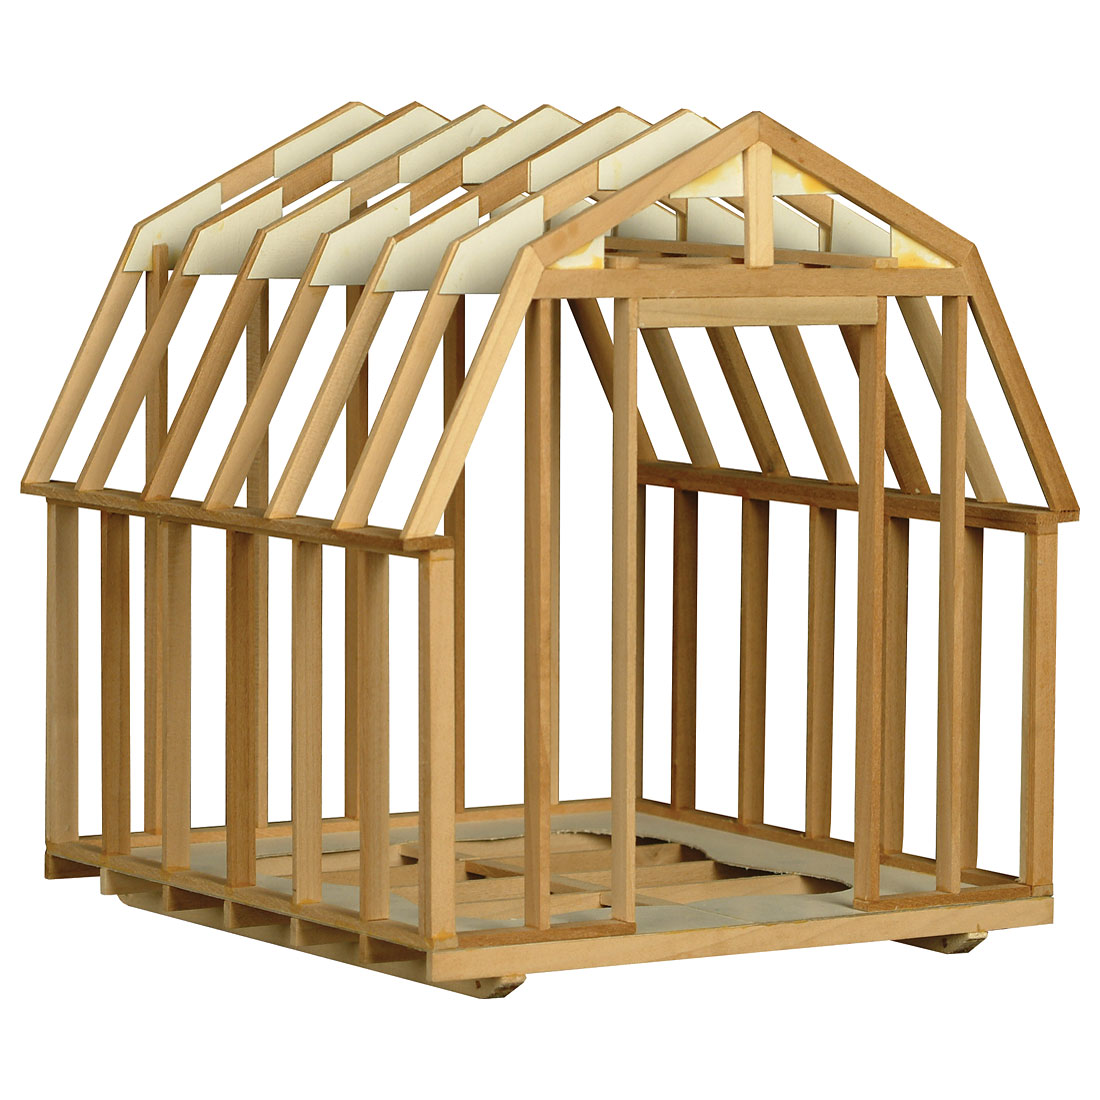 Utility building framing kit 101 w31573 for Kits for building a house